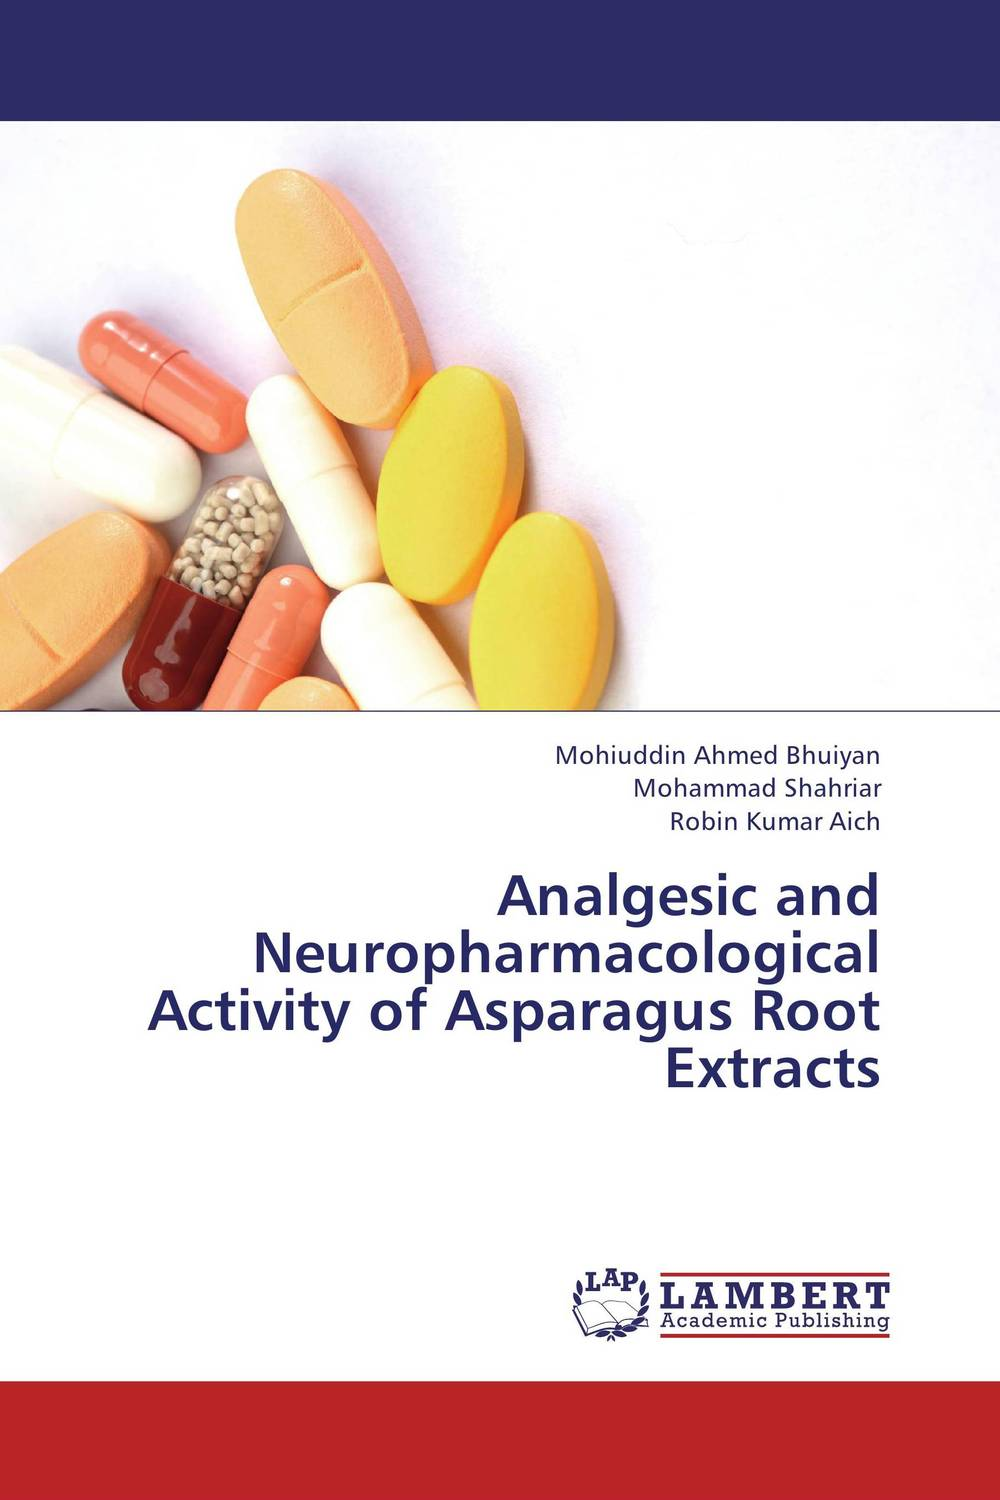 Analgesic and Neuropharmacological Activity of Asparagus Root Extracts in vitro activities of asparagus racemosus root extracts